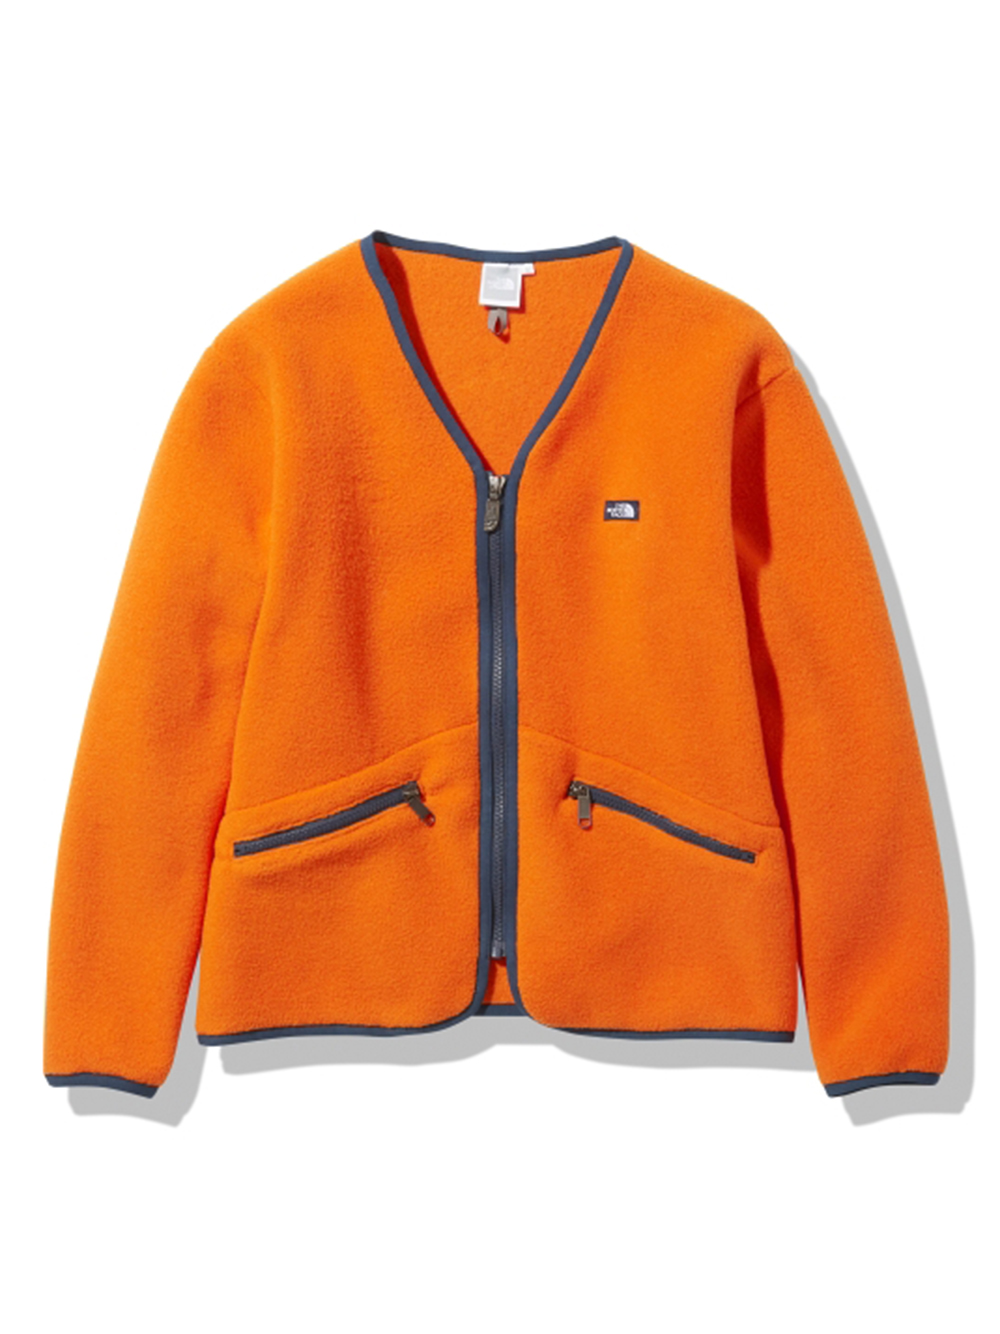 【THE NORTH FACE】ARMADILLA Cardigan